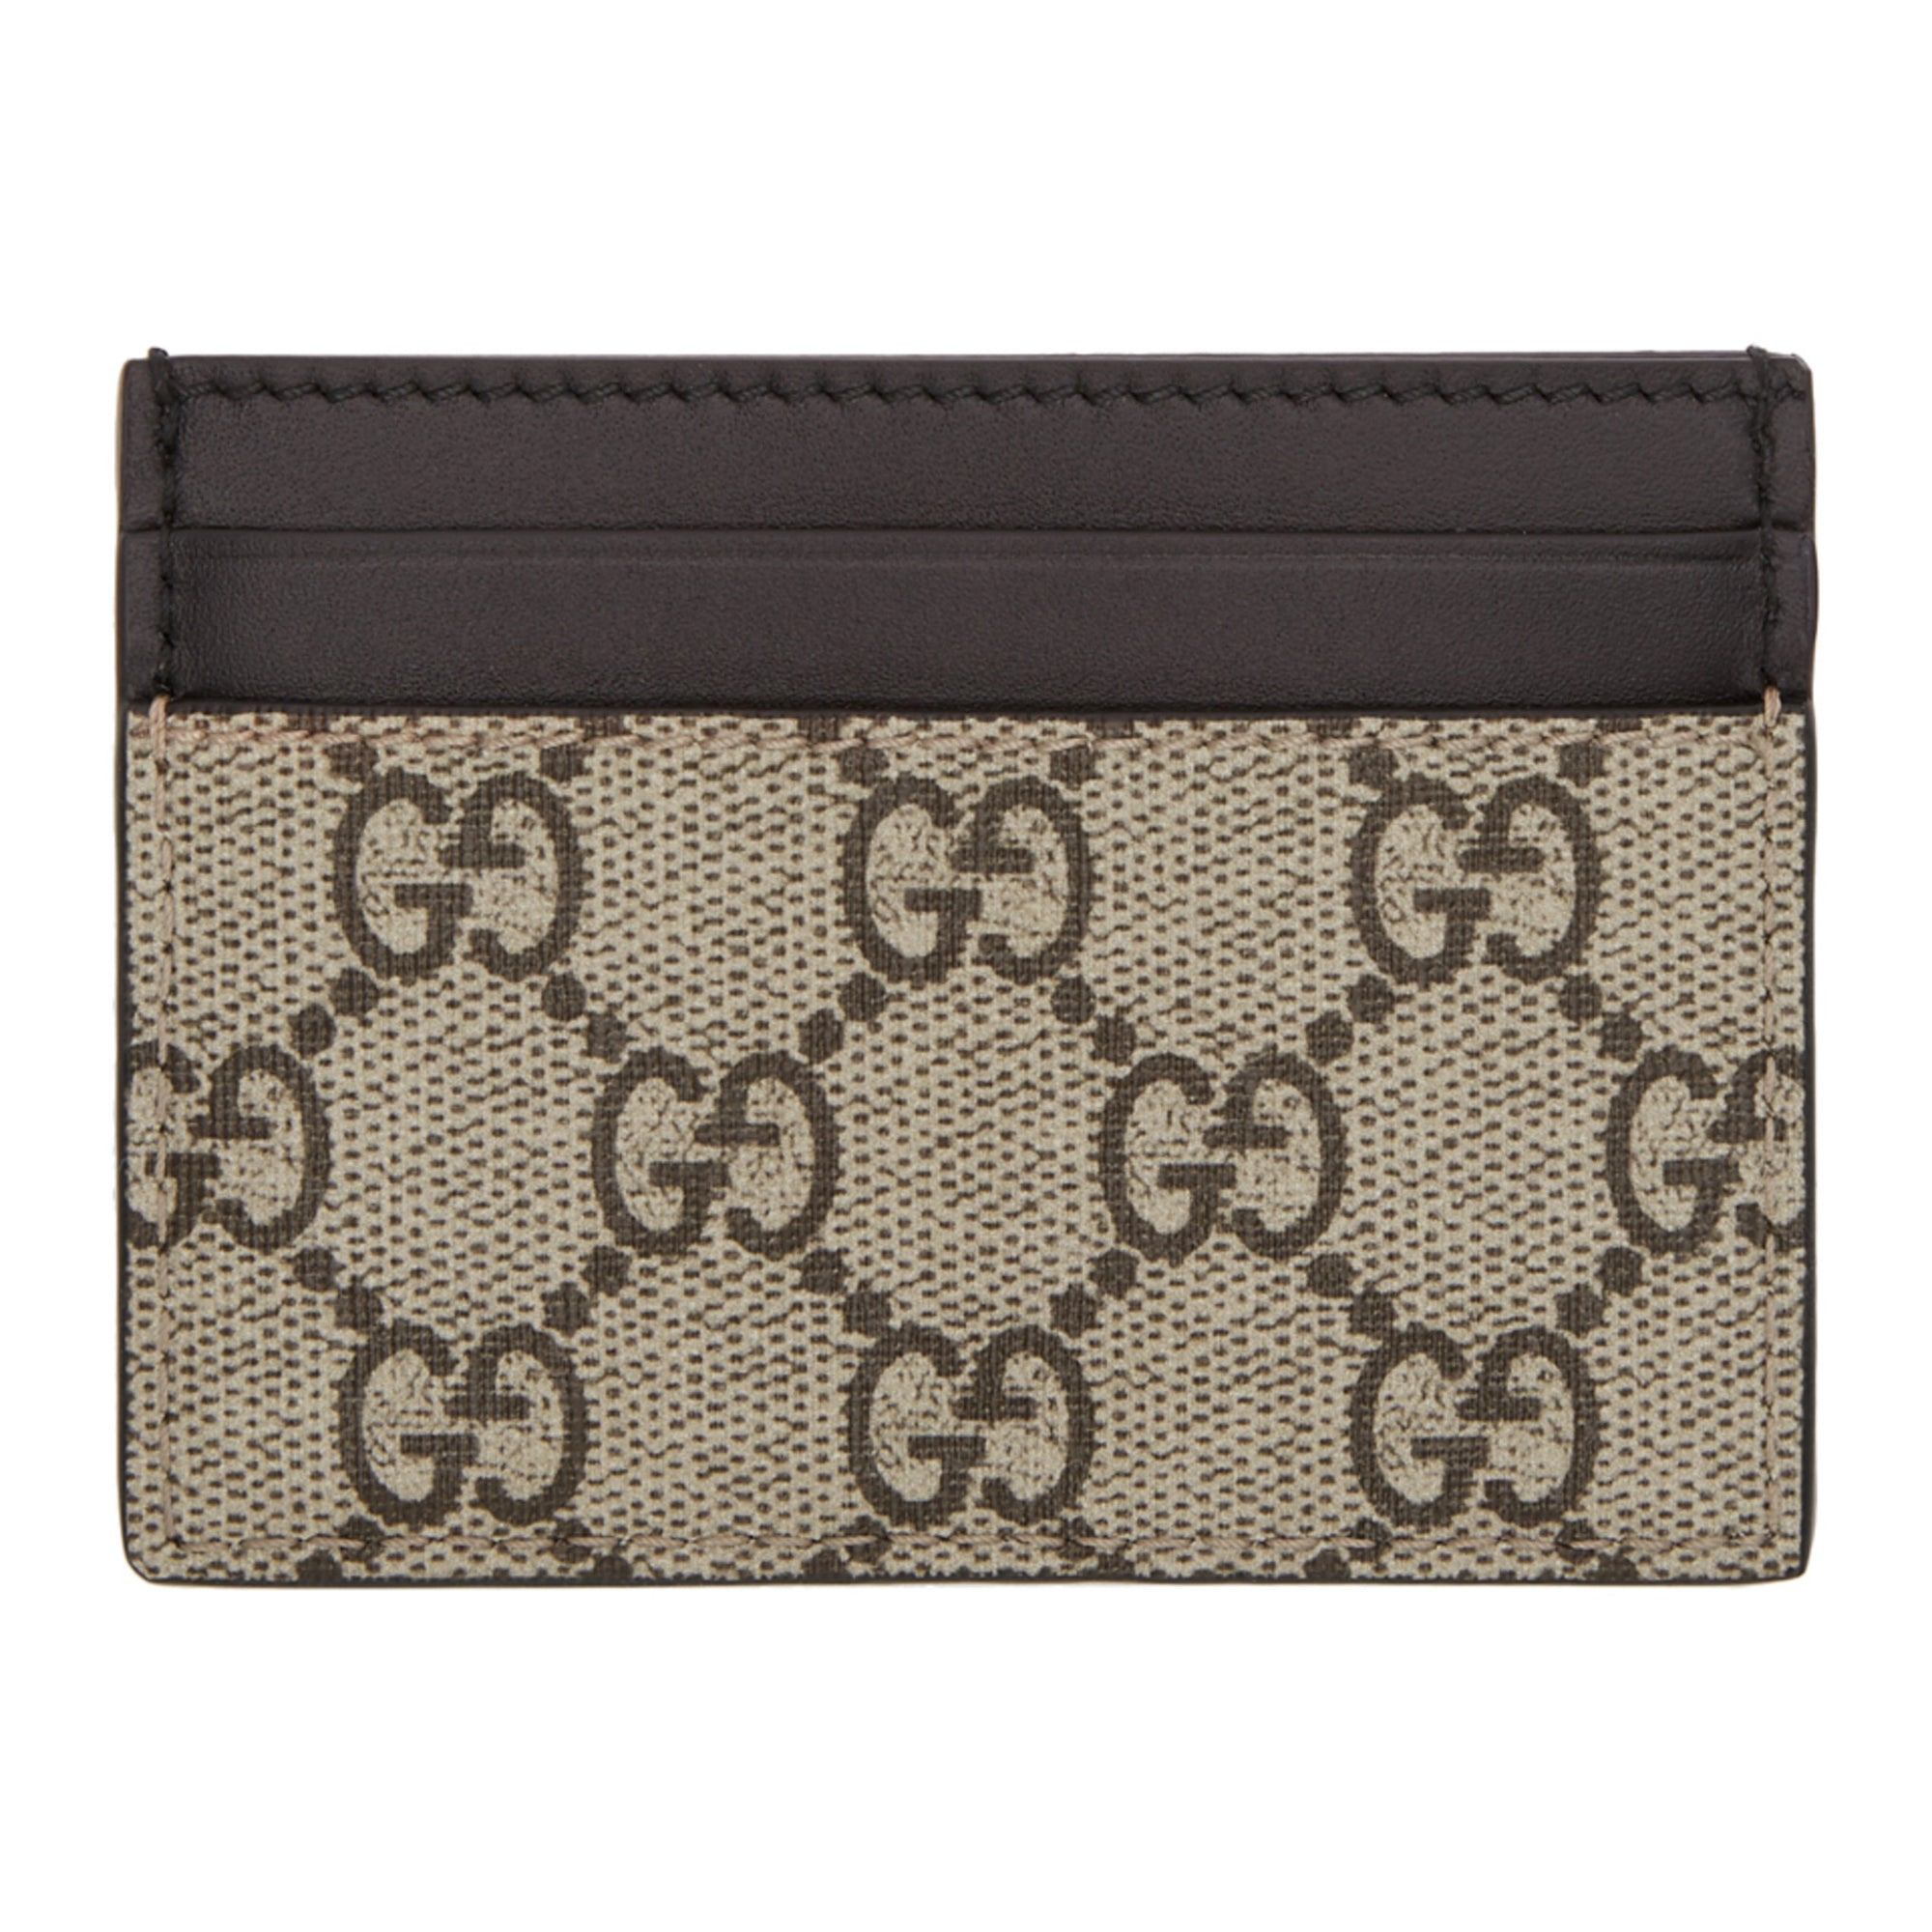 8428d6ea1503 Men's Gucci Bee Print GG Supreme Card Case - Members Only Lux